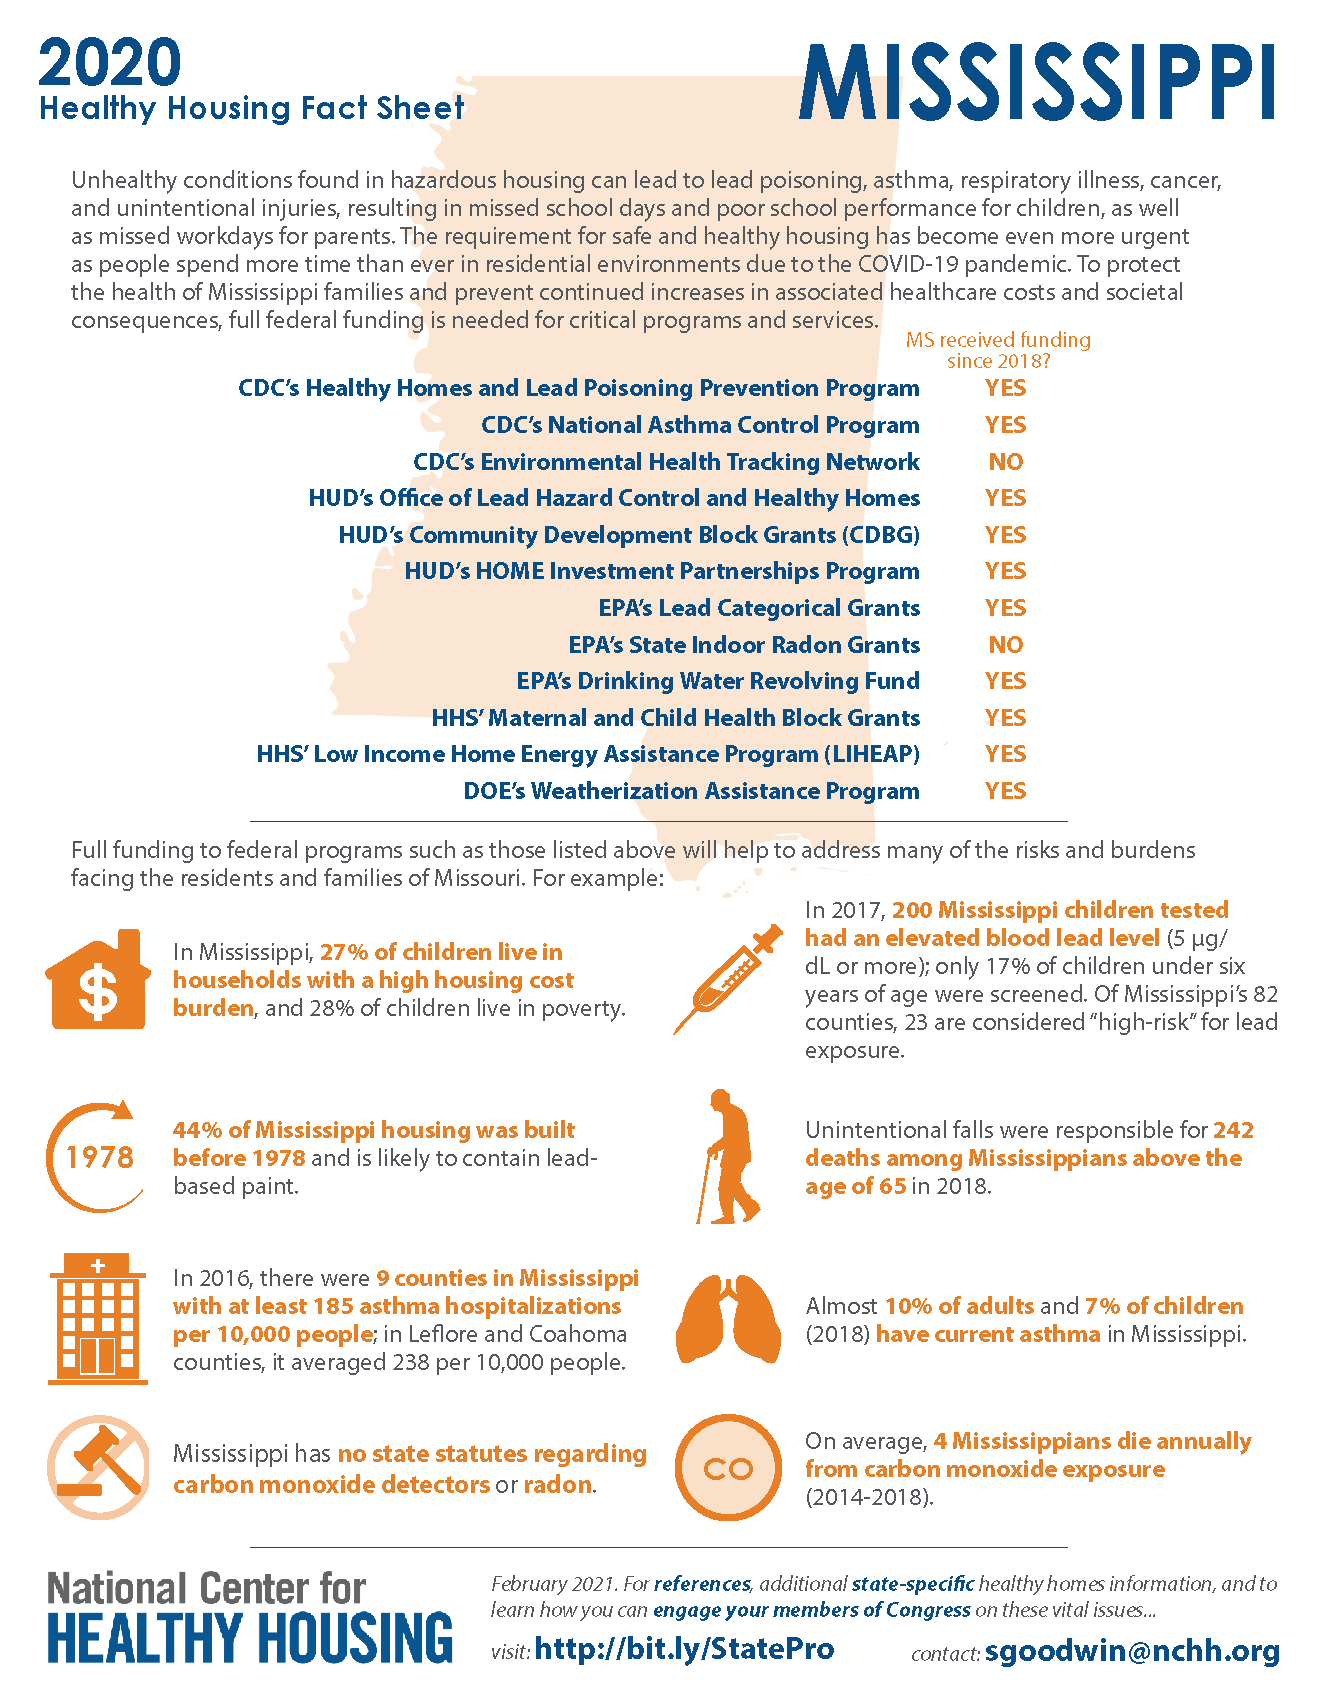 Healthy Housing Fact Sheet - Mississippi 2020